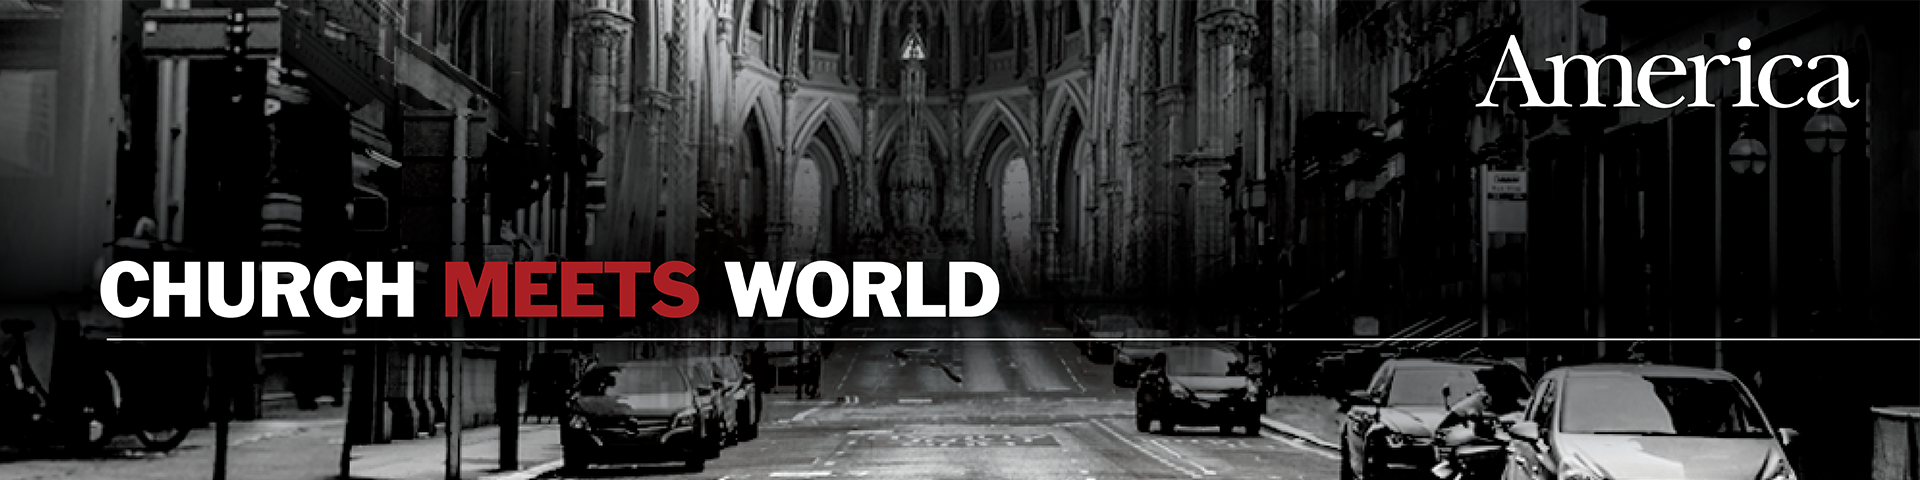 church_world_banner